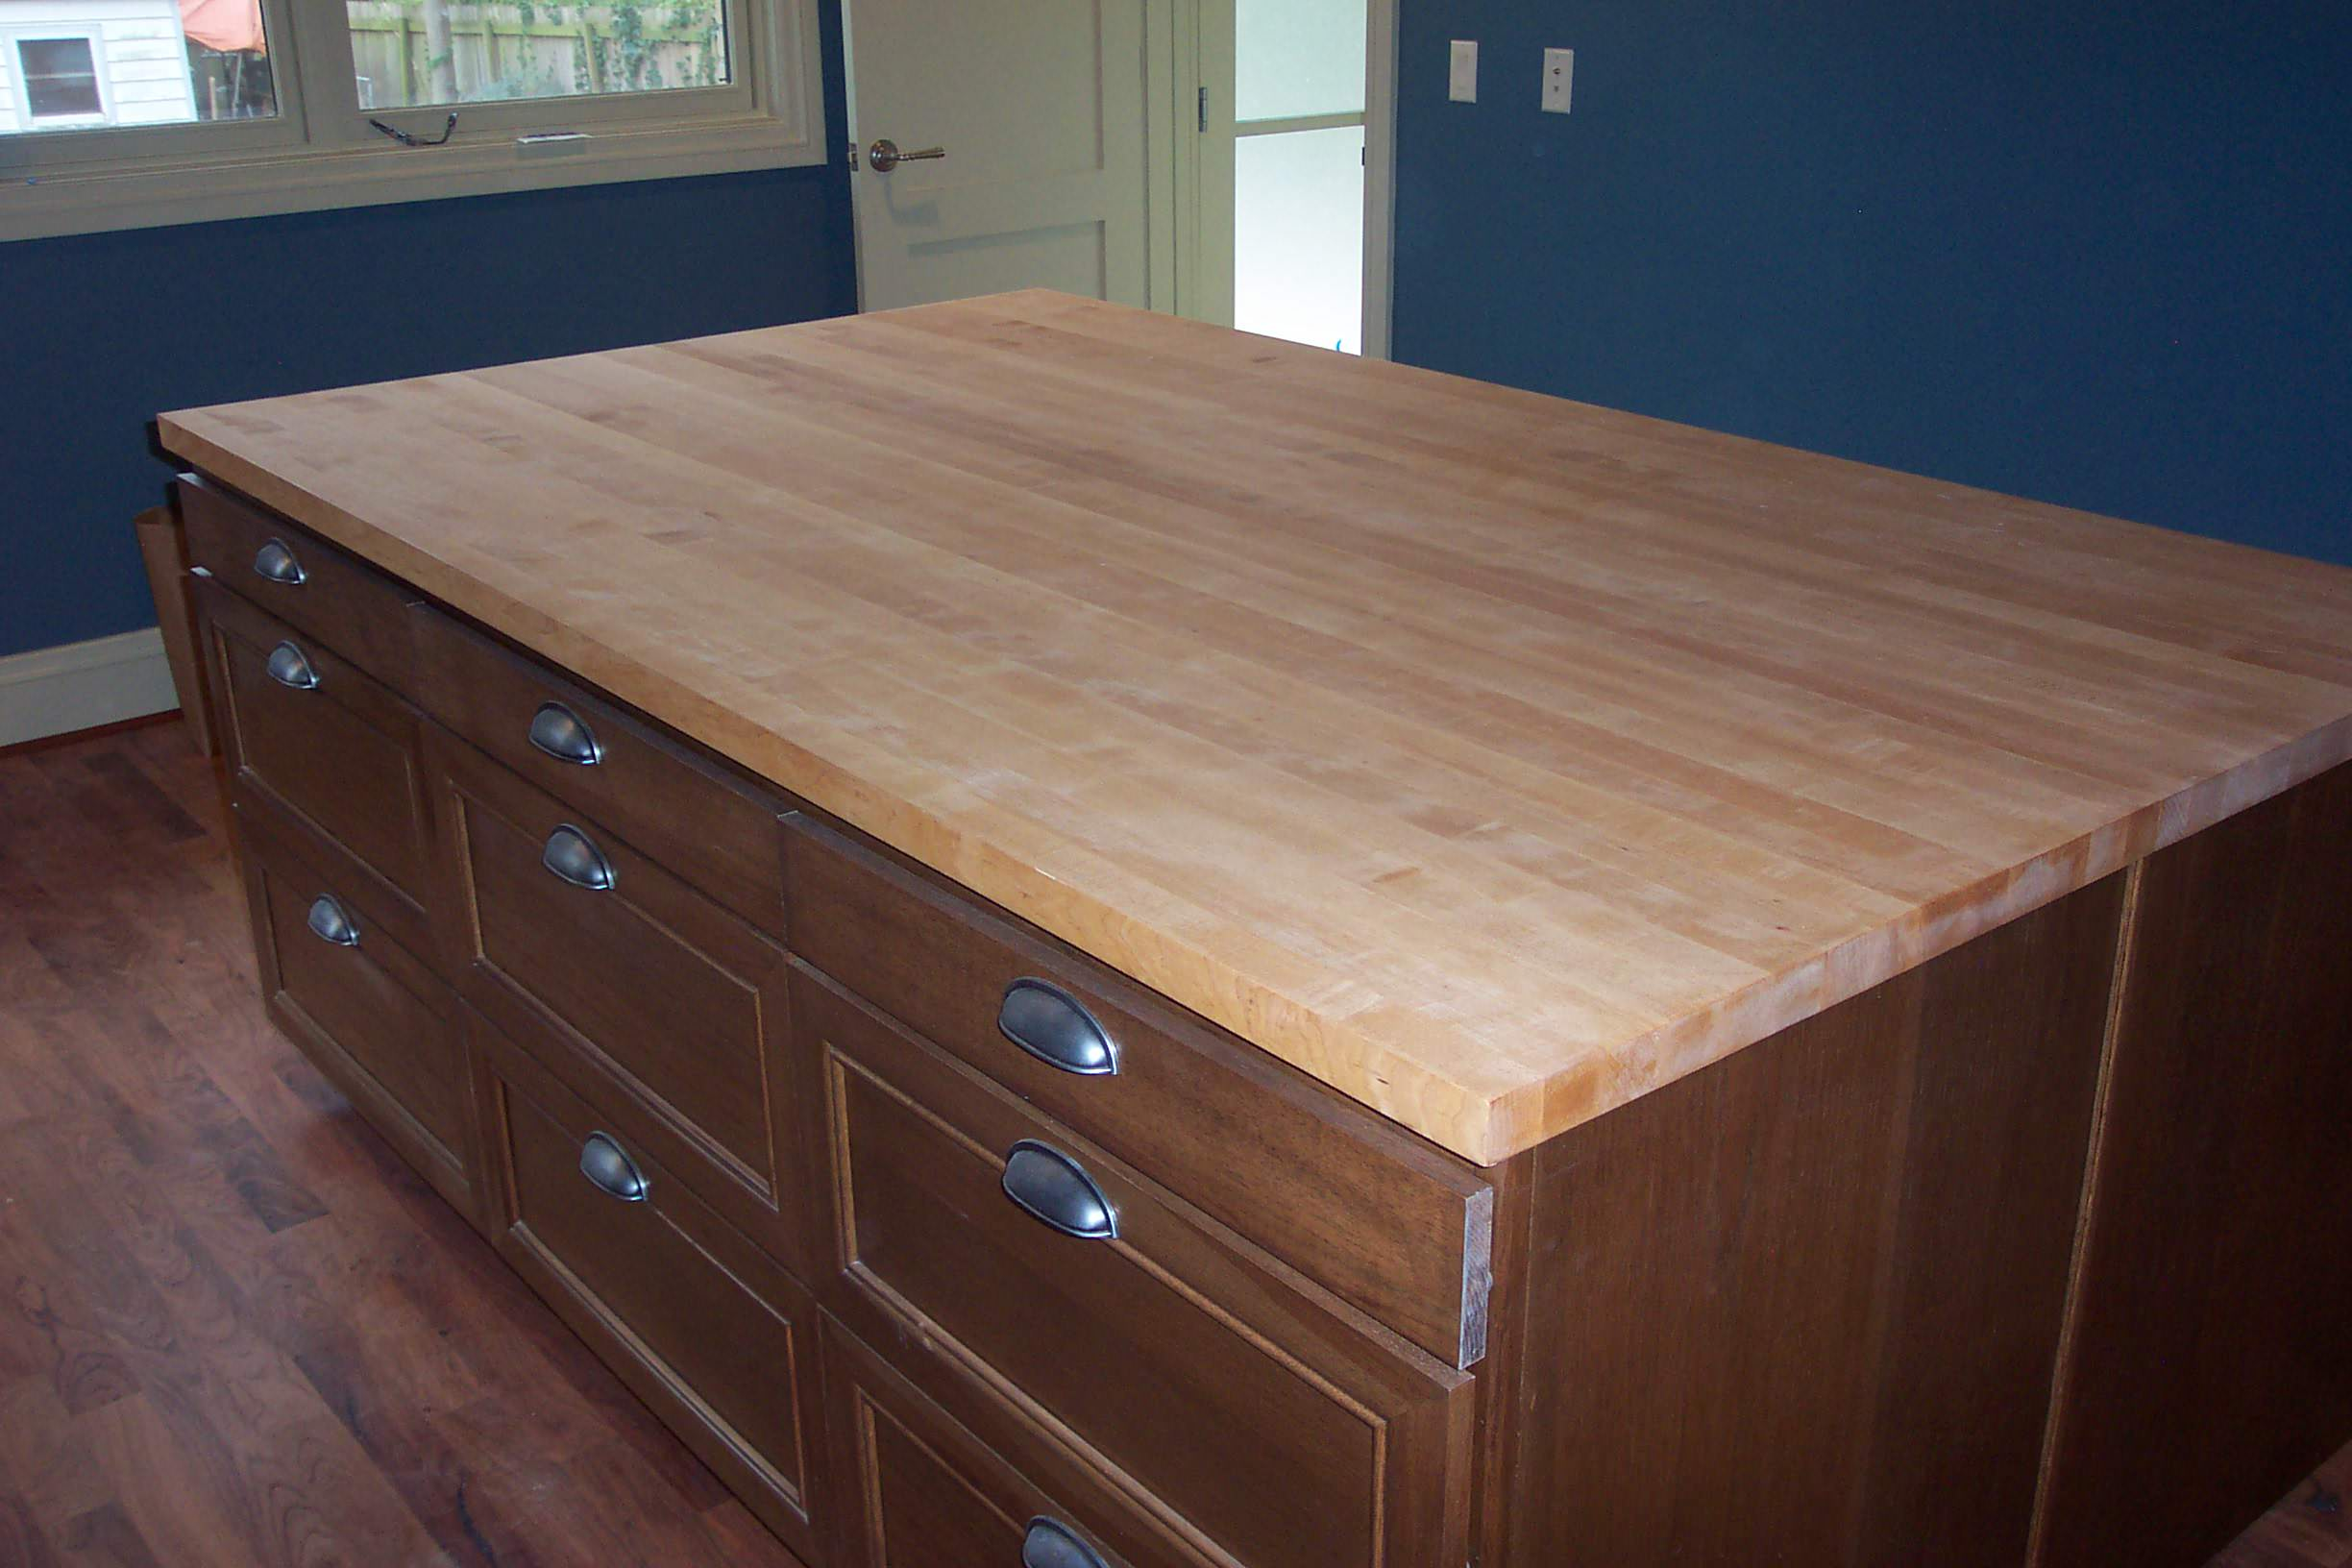 Maple Edge grain wood counter top